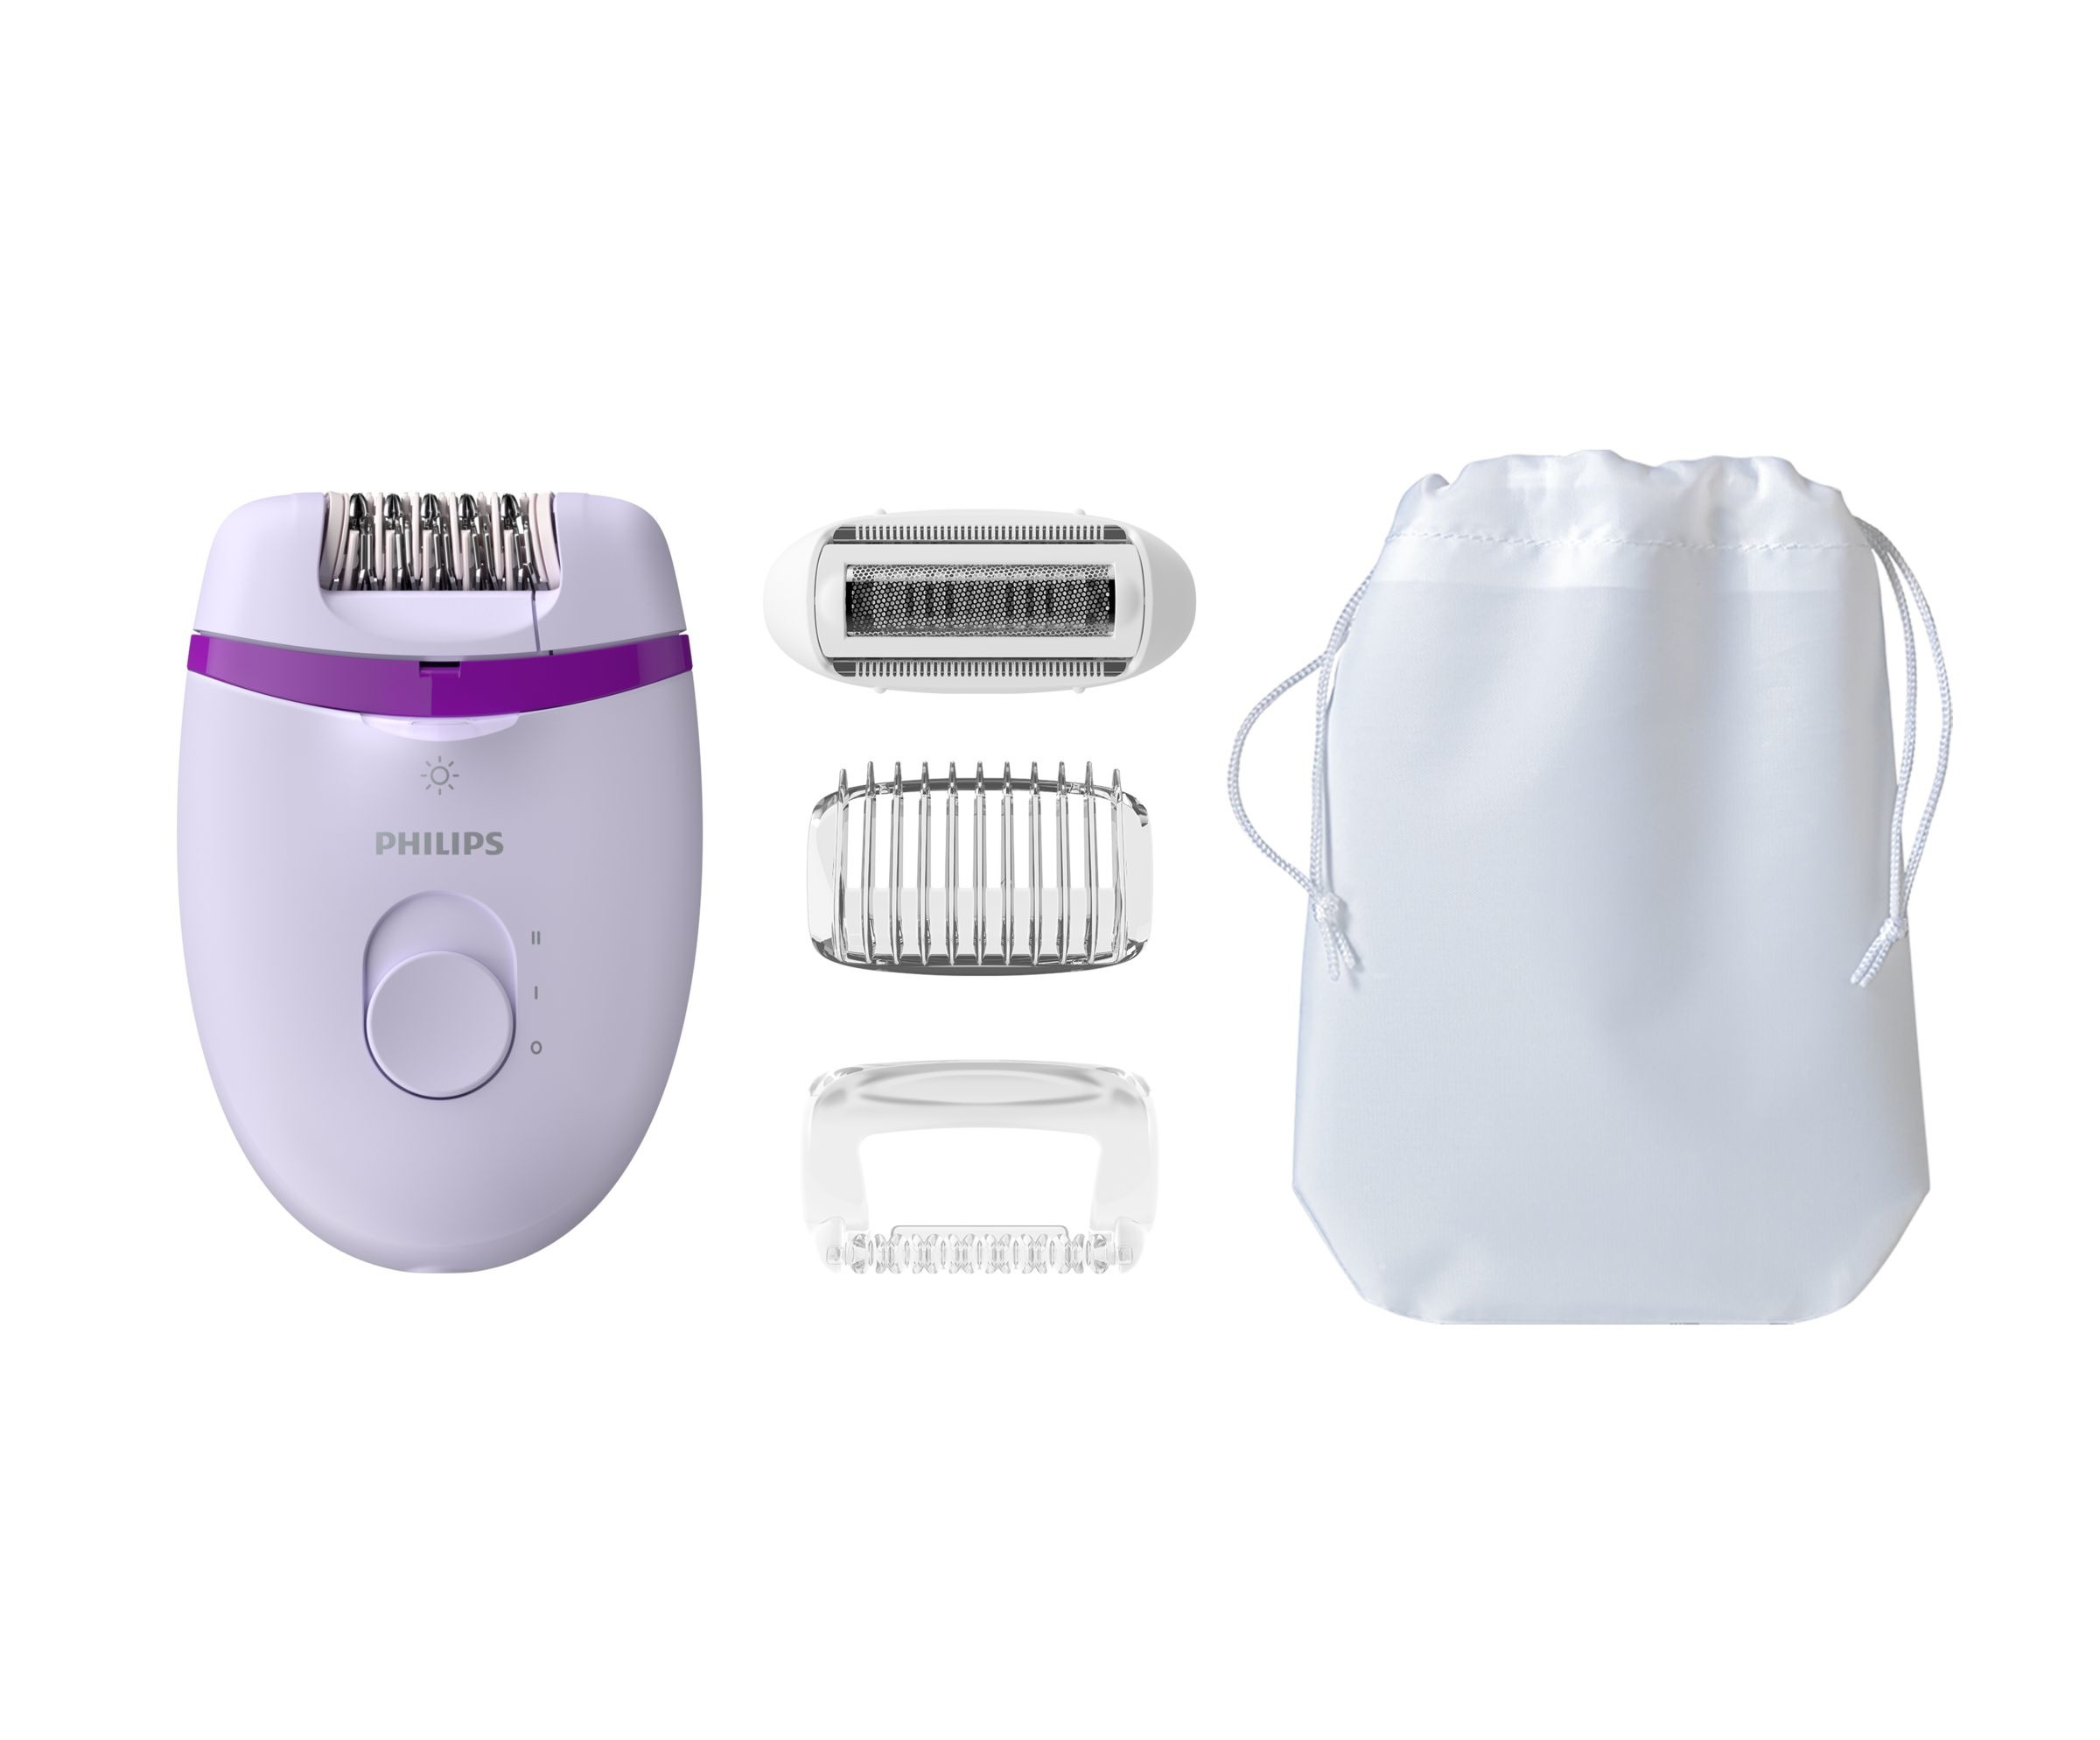 Korting Philips BRE275 00 epilator